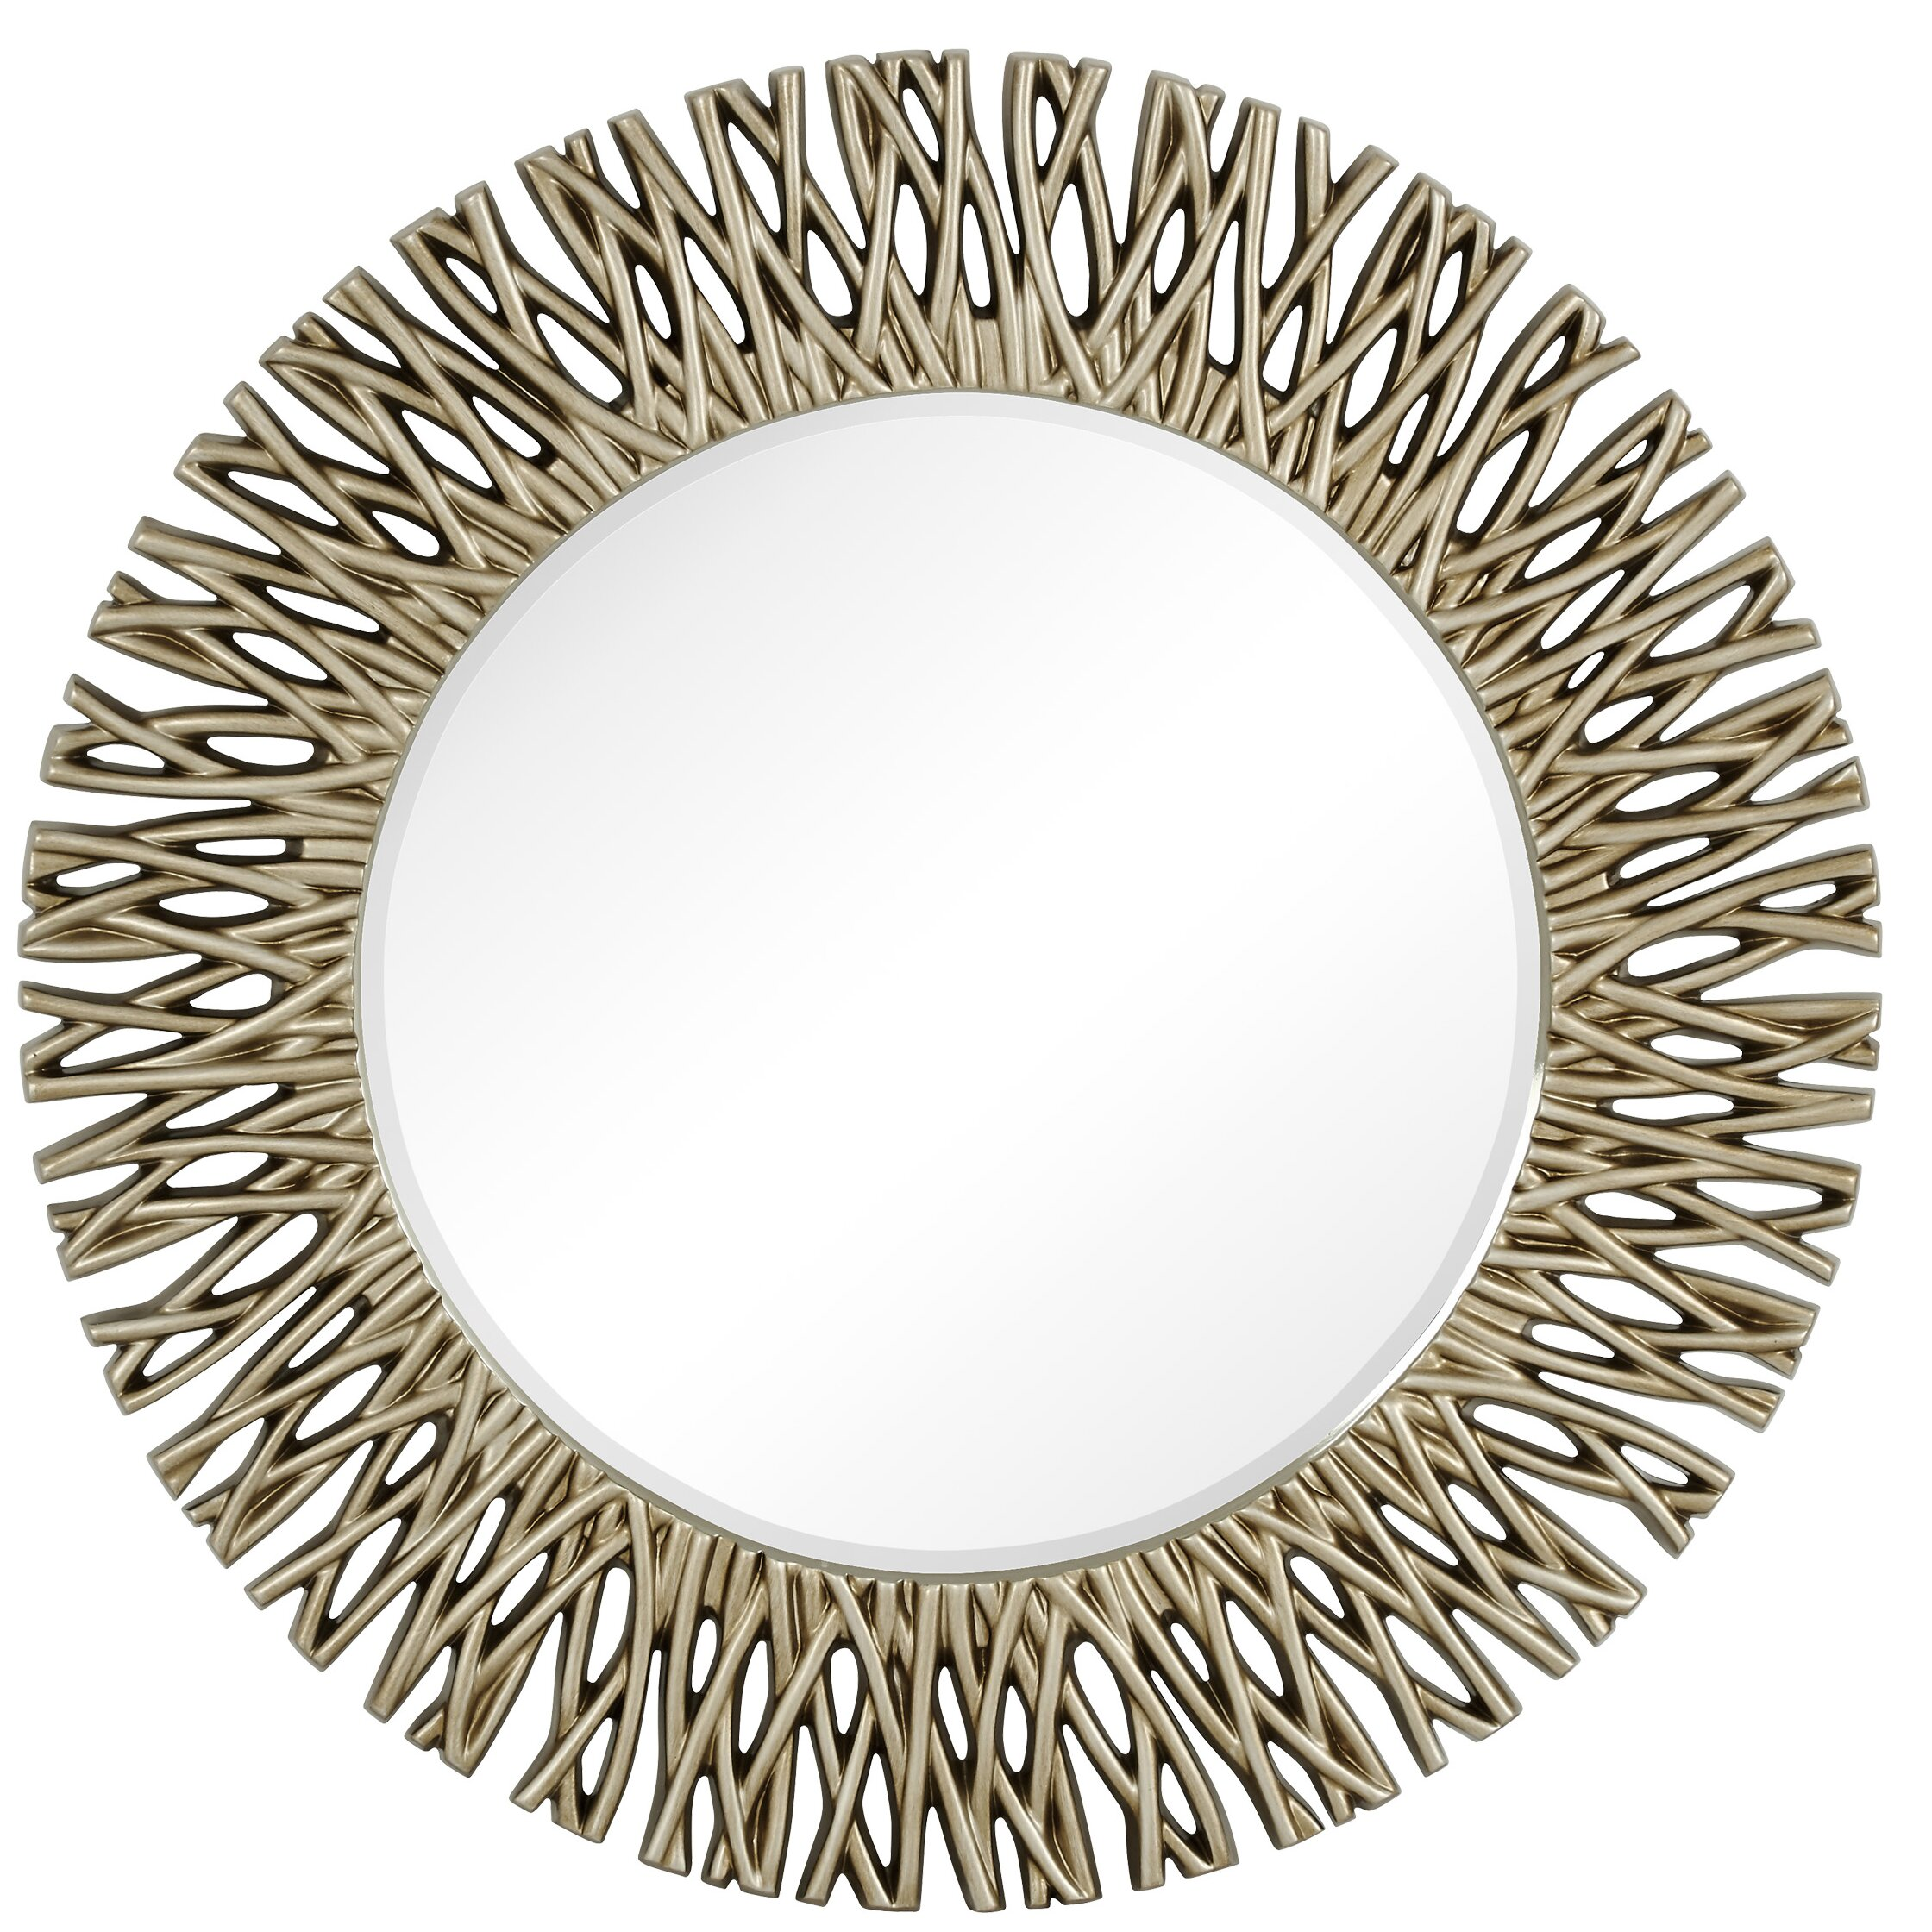 Majestic mirror large round antique silver decorative for Large silver decorative mirrors